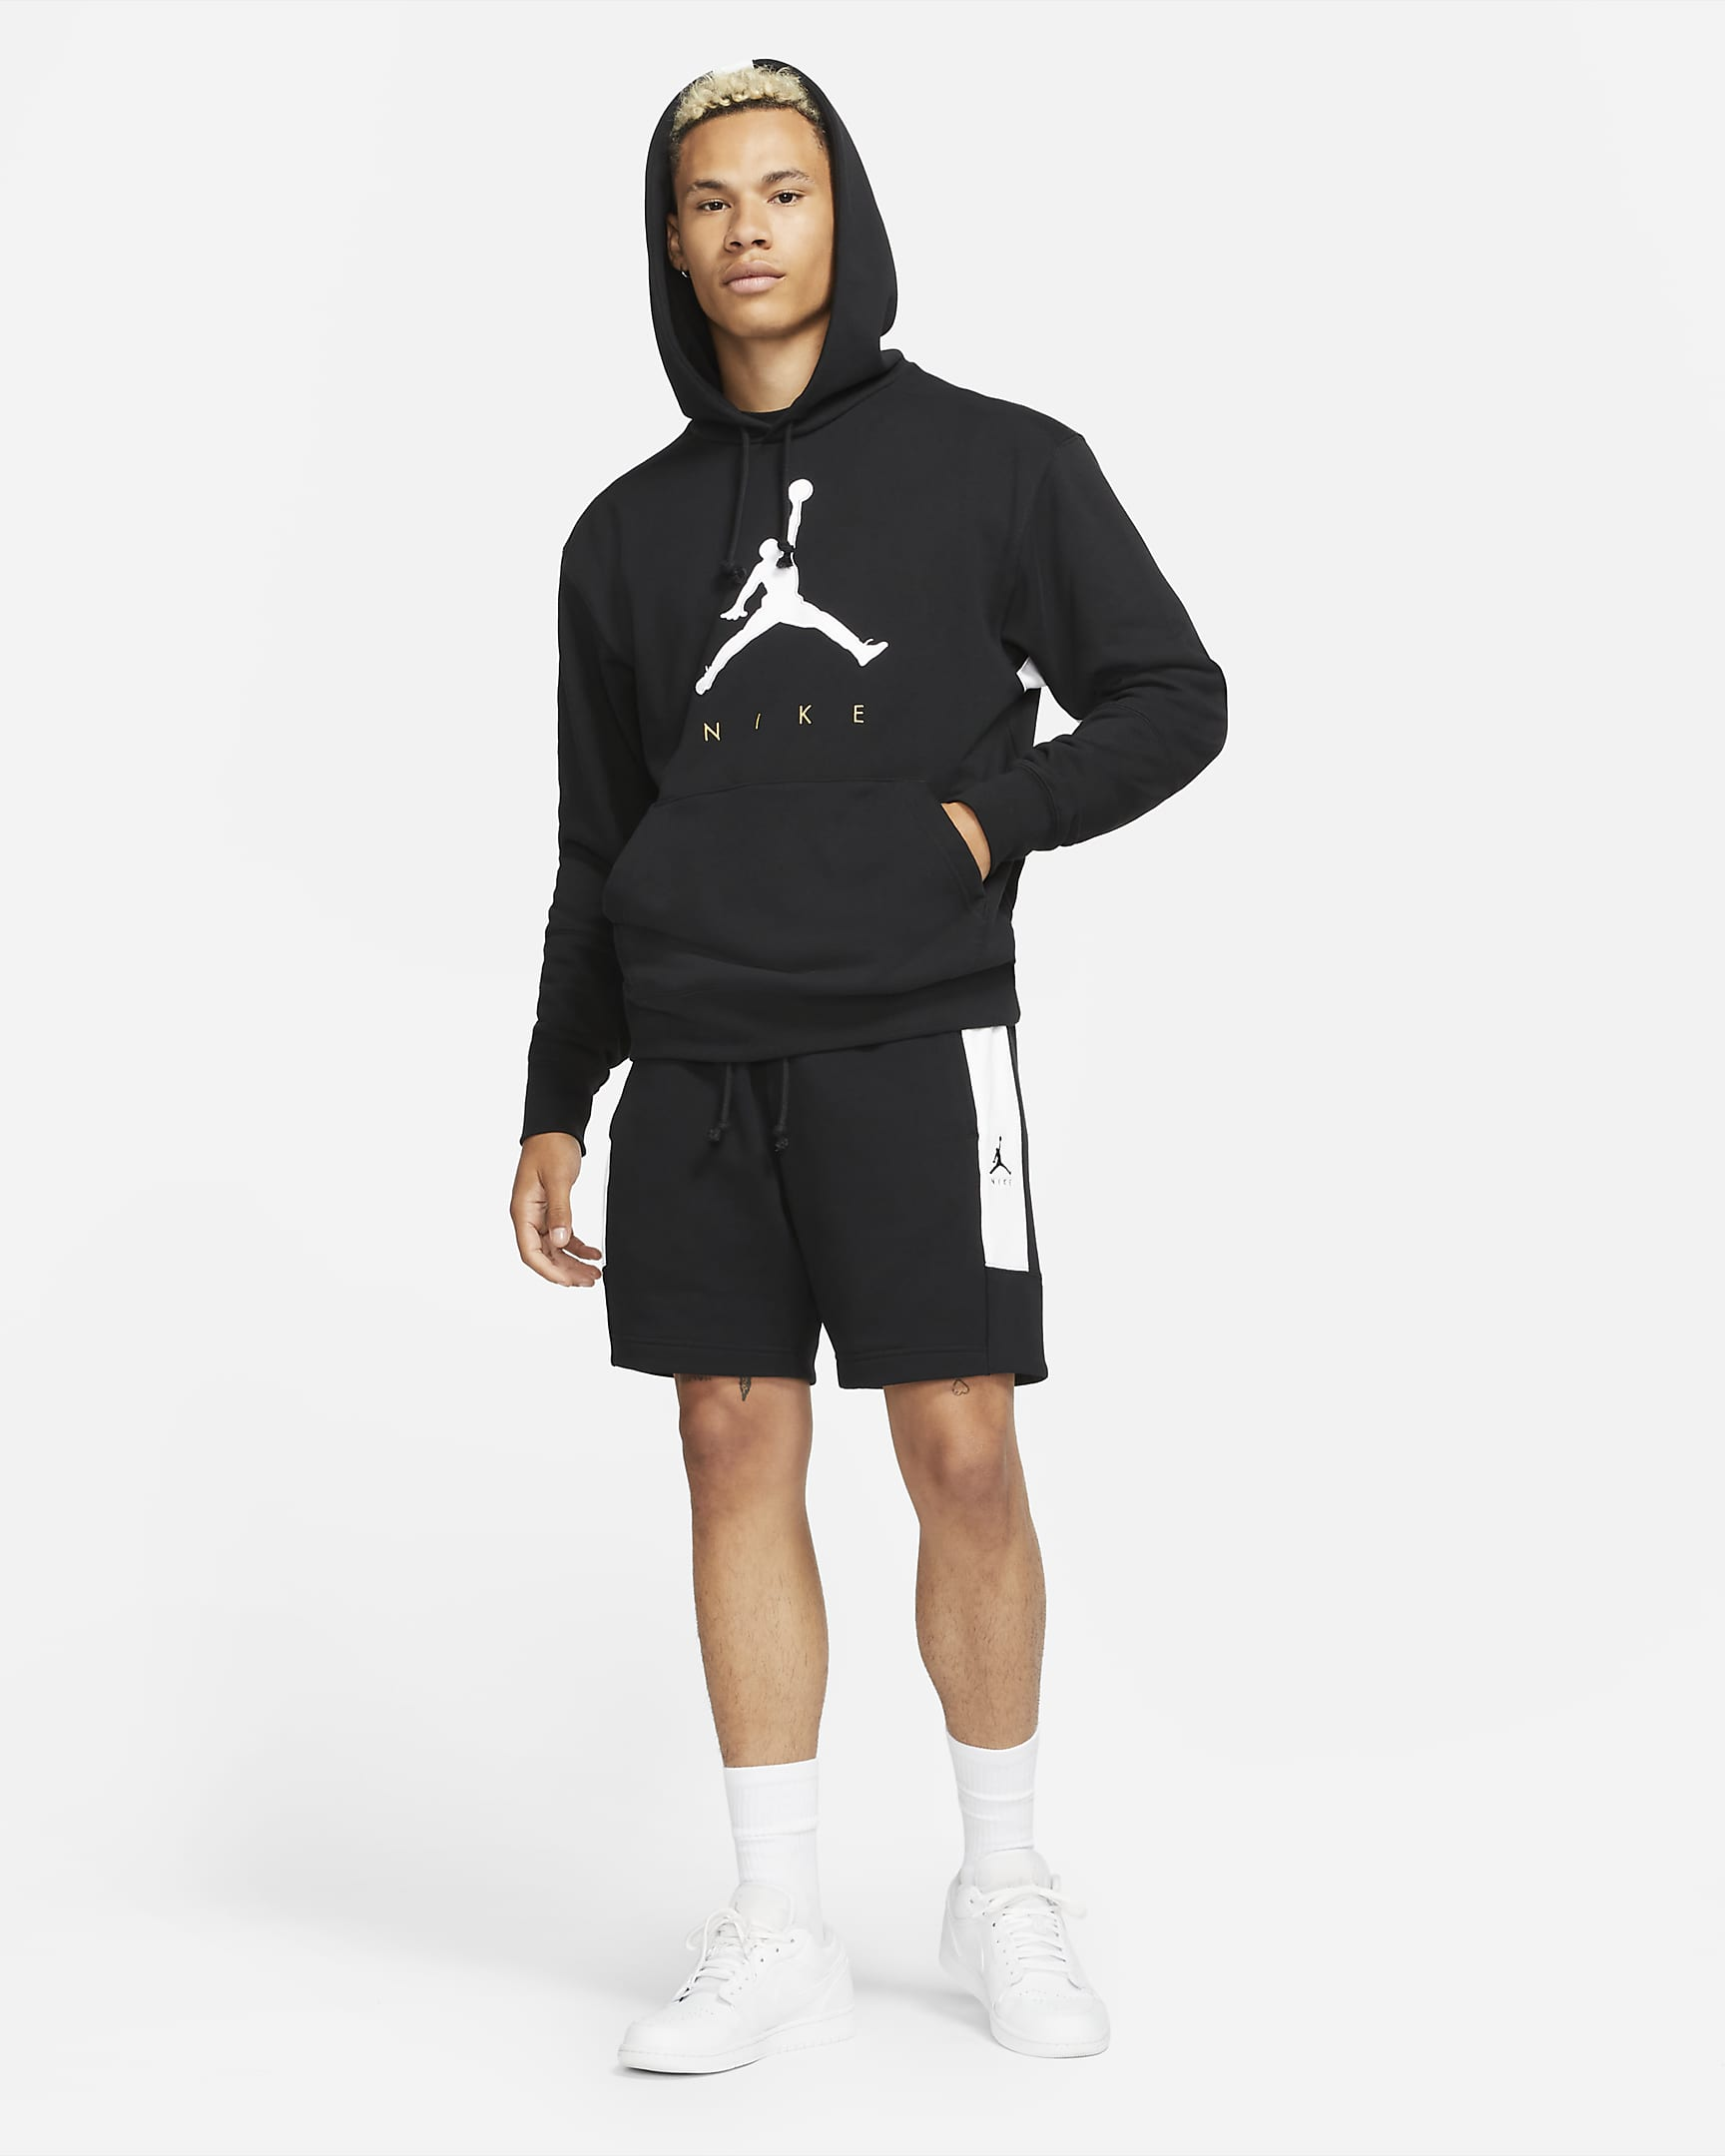 nike air young jeezy 2 in india price list